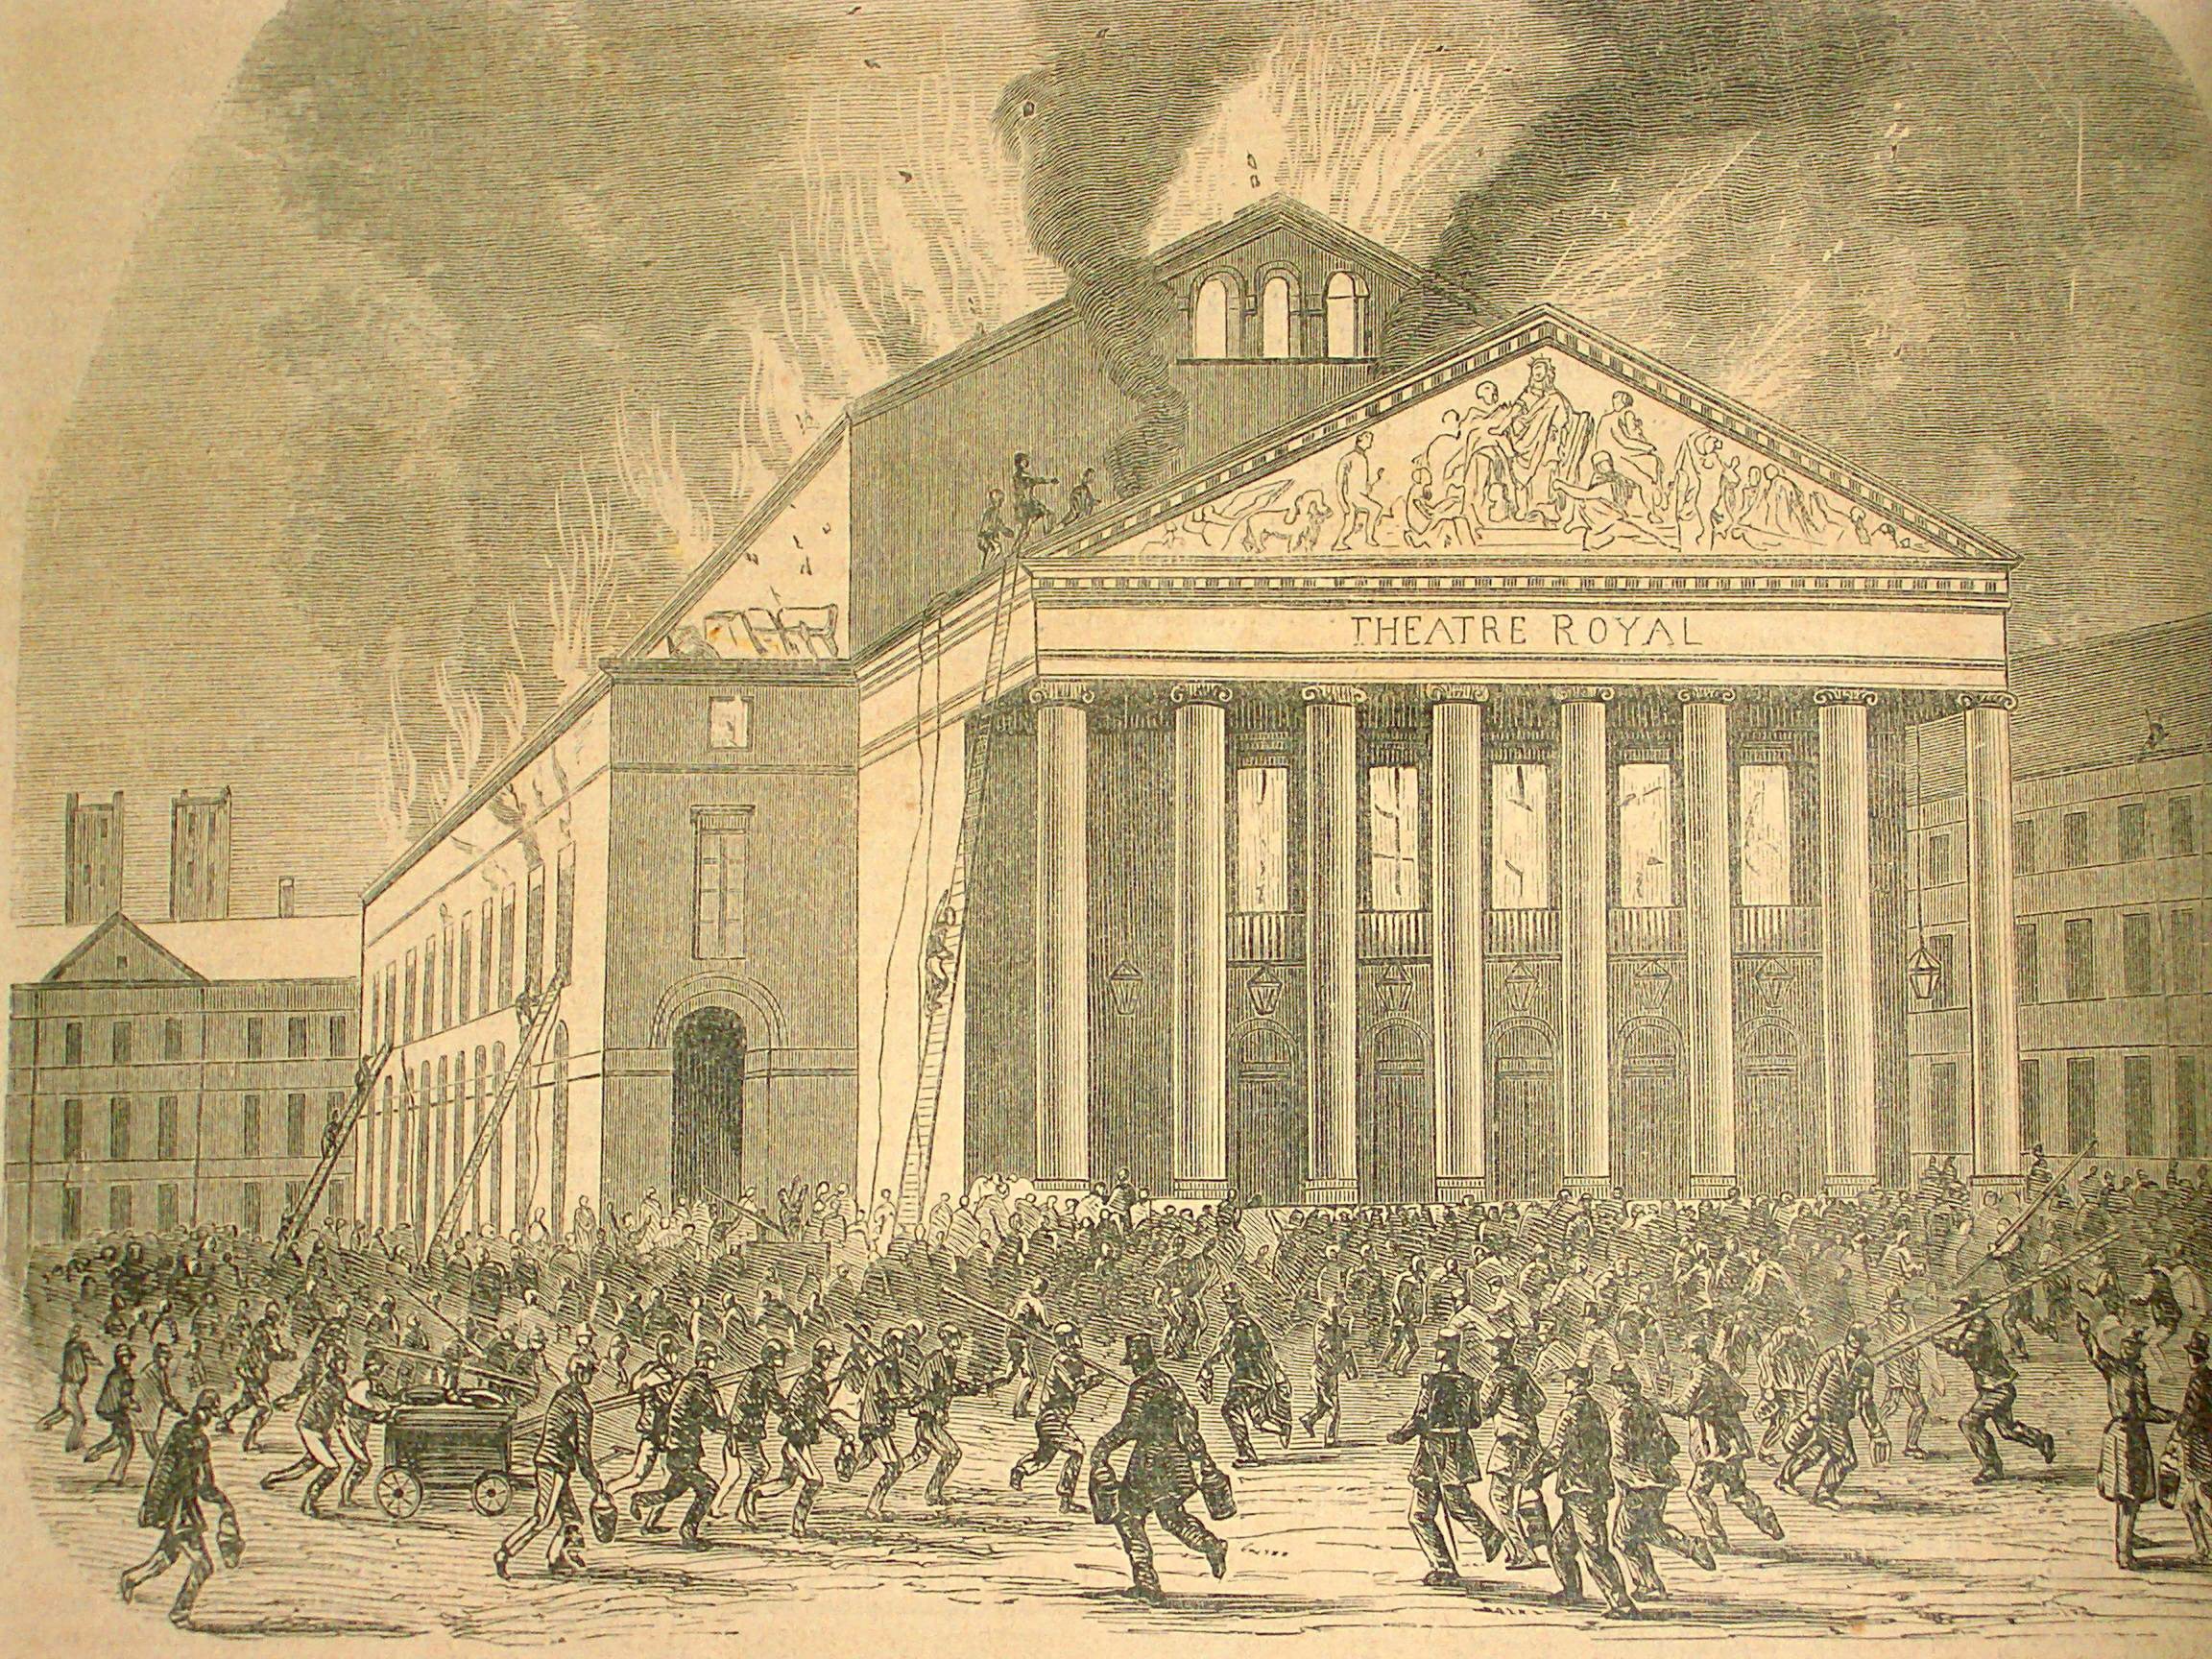 File:Anonimo Teatro de la Monnaie incendio del 1855 incisione  L'Illustration 1855 Parigi